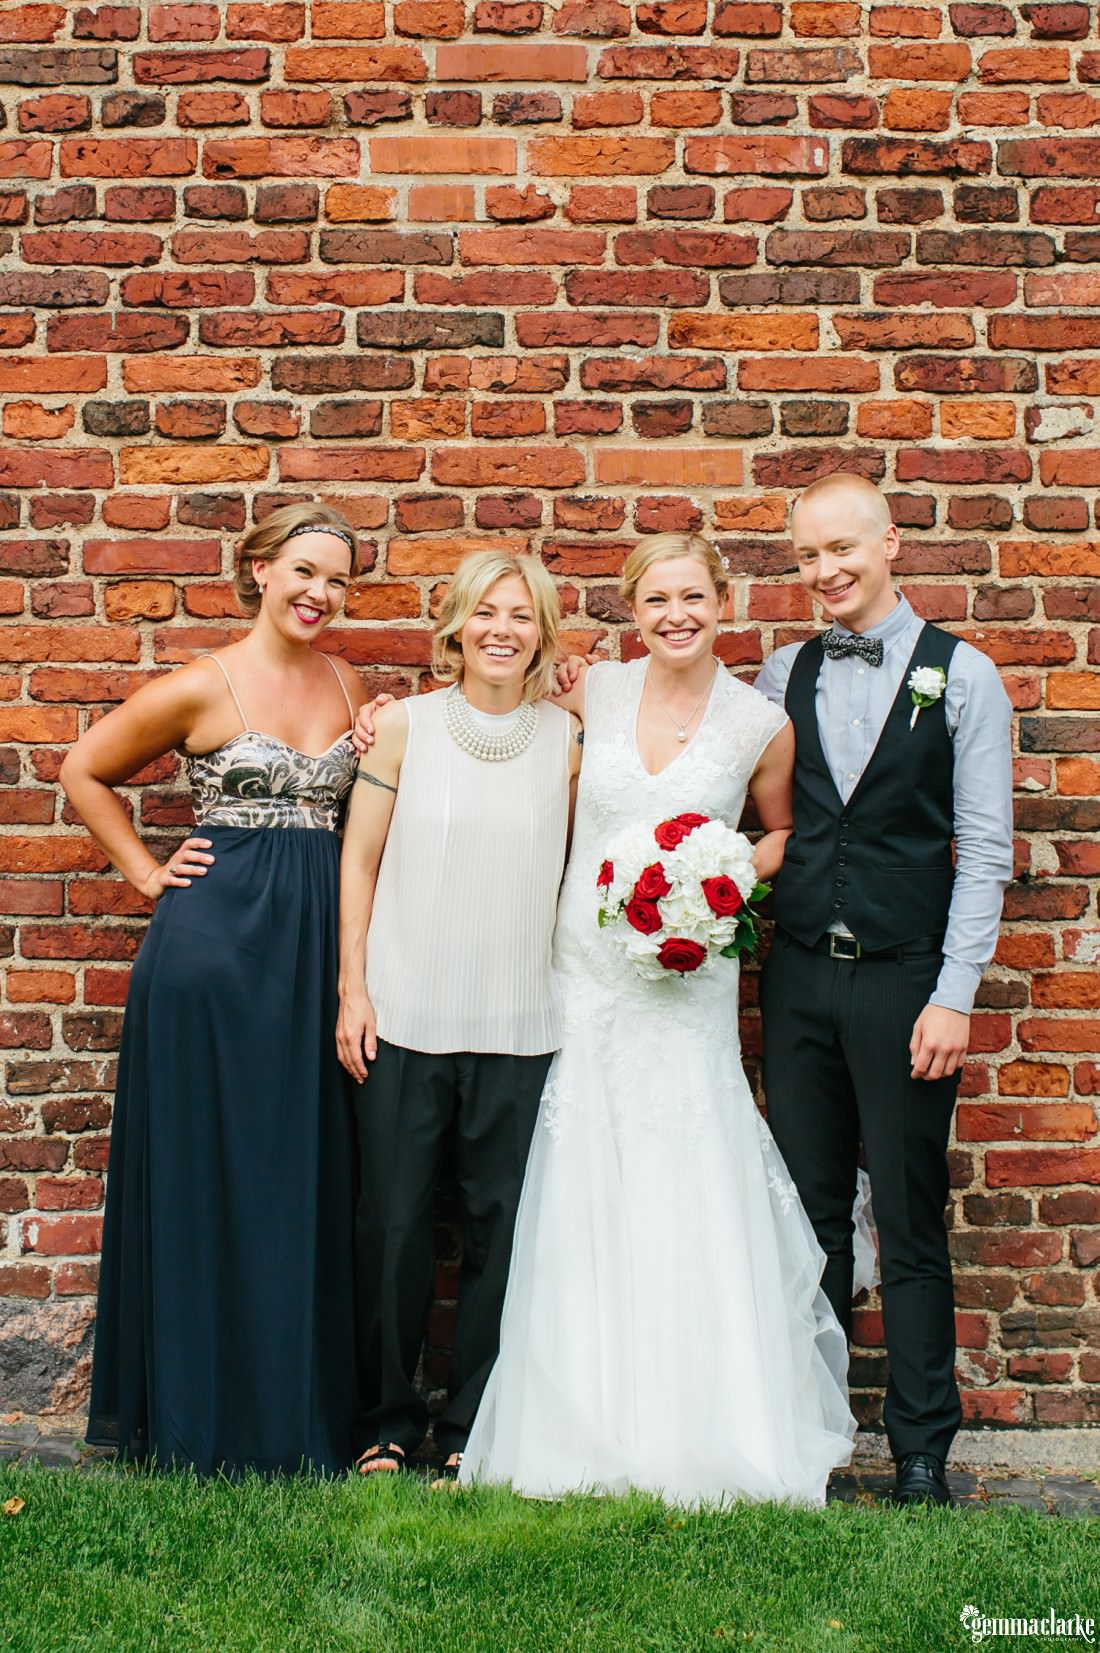 A bride poses with her bridal party in front of a brick wall